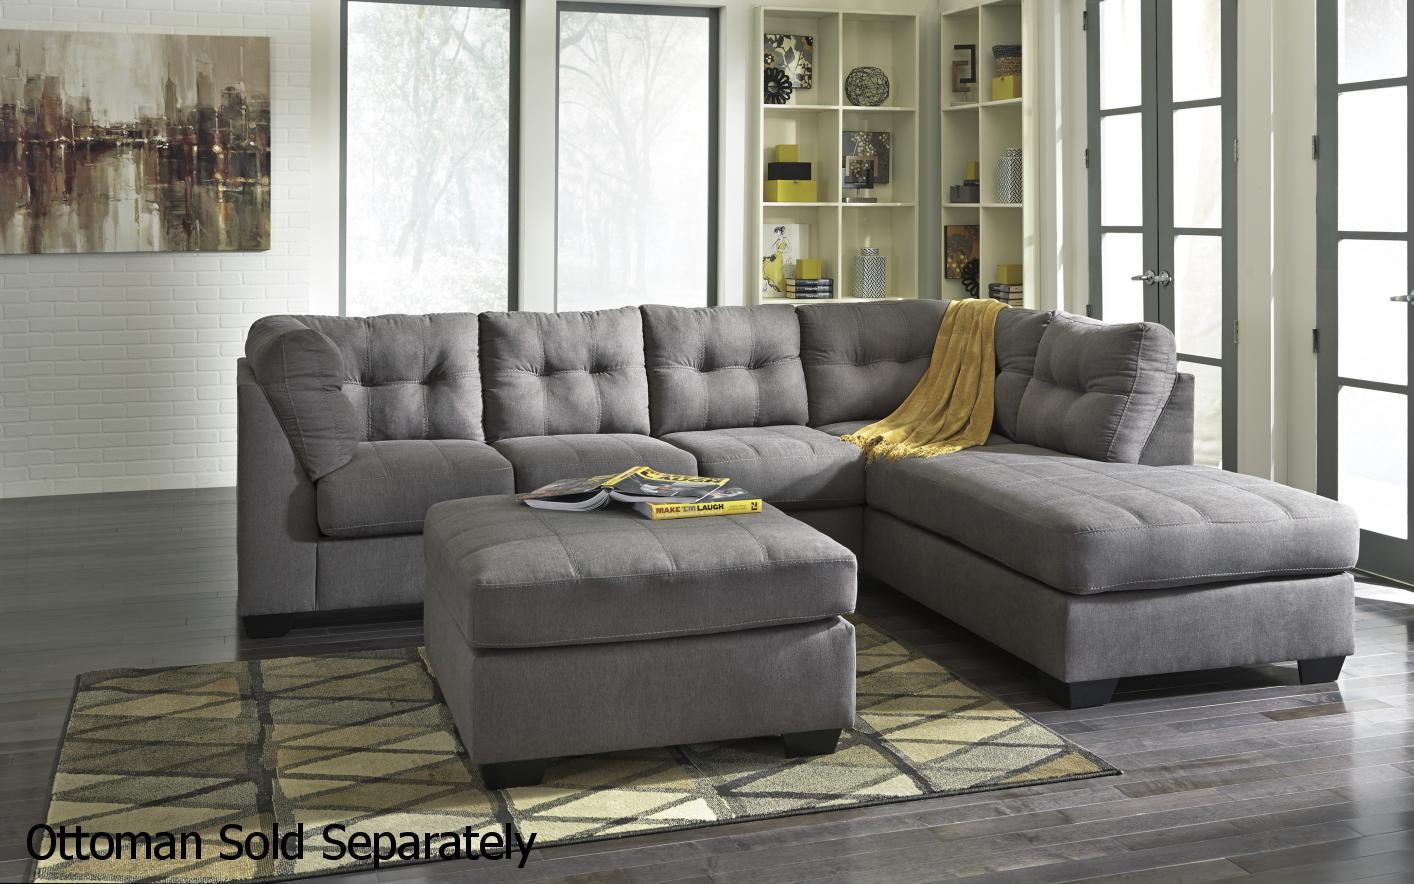 sofa brown sectional leather size couch sofas small the large grey couches living of room chaise bed best choosing modular with full